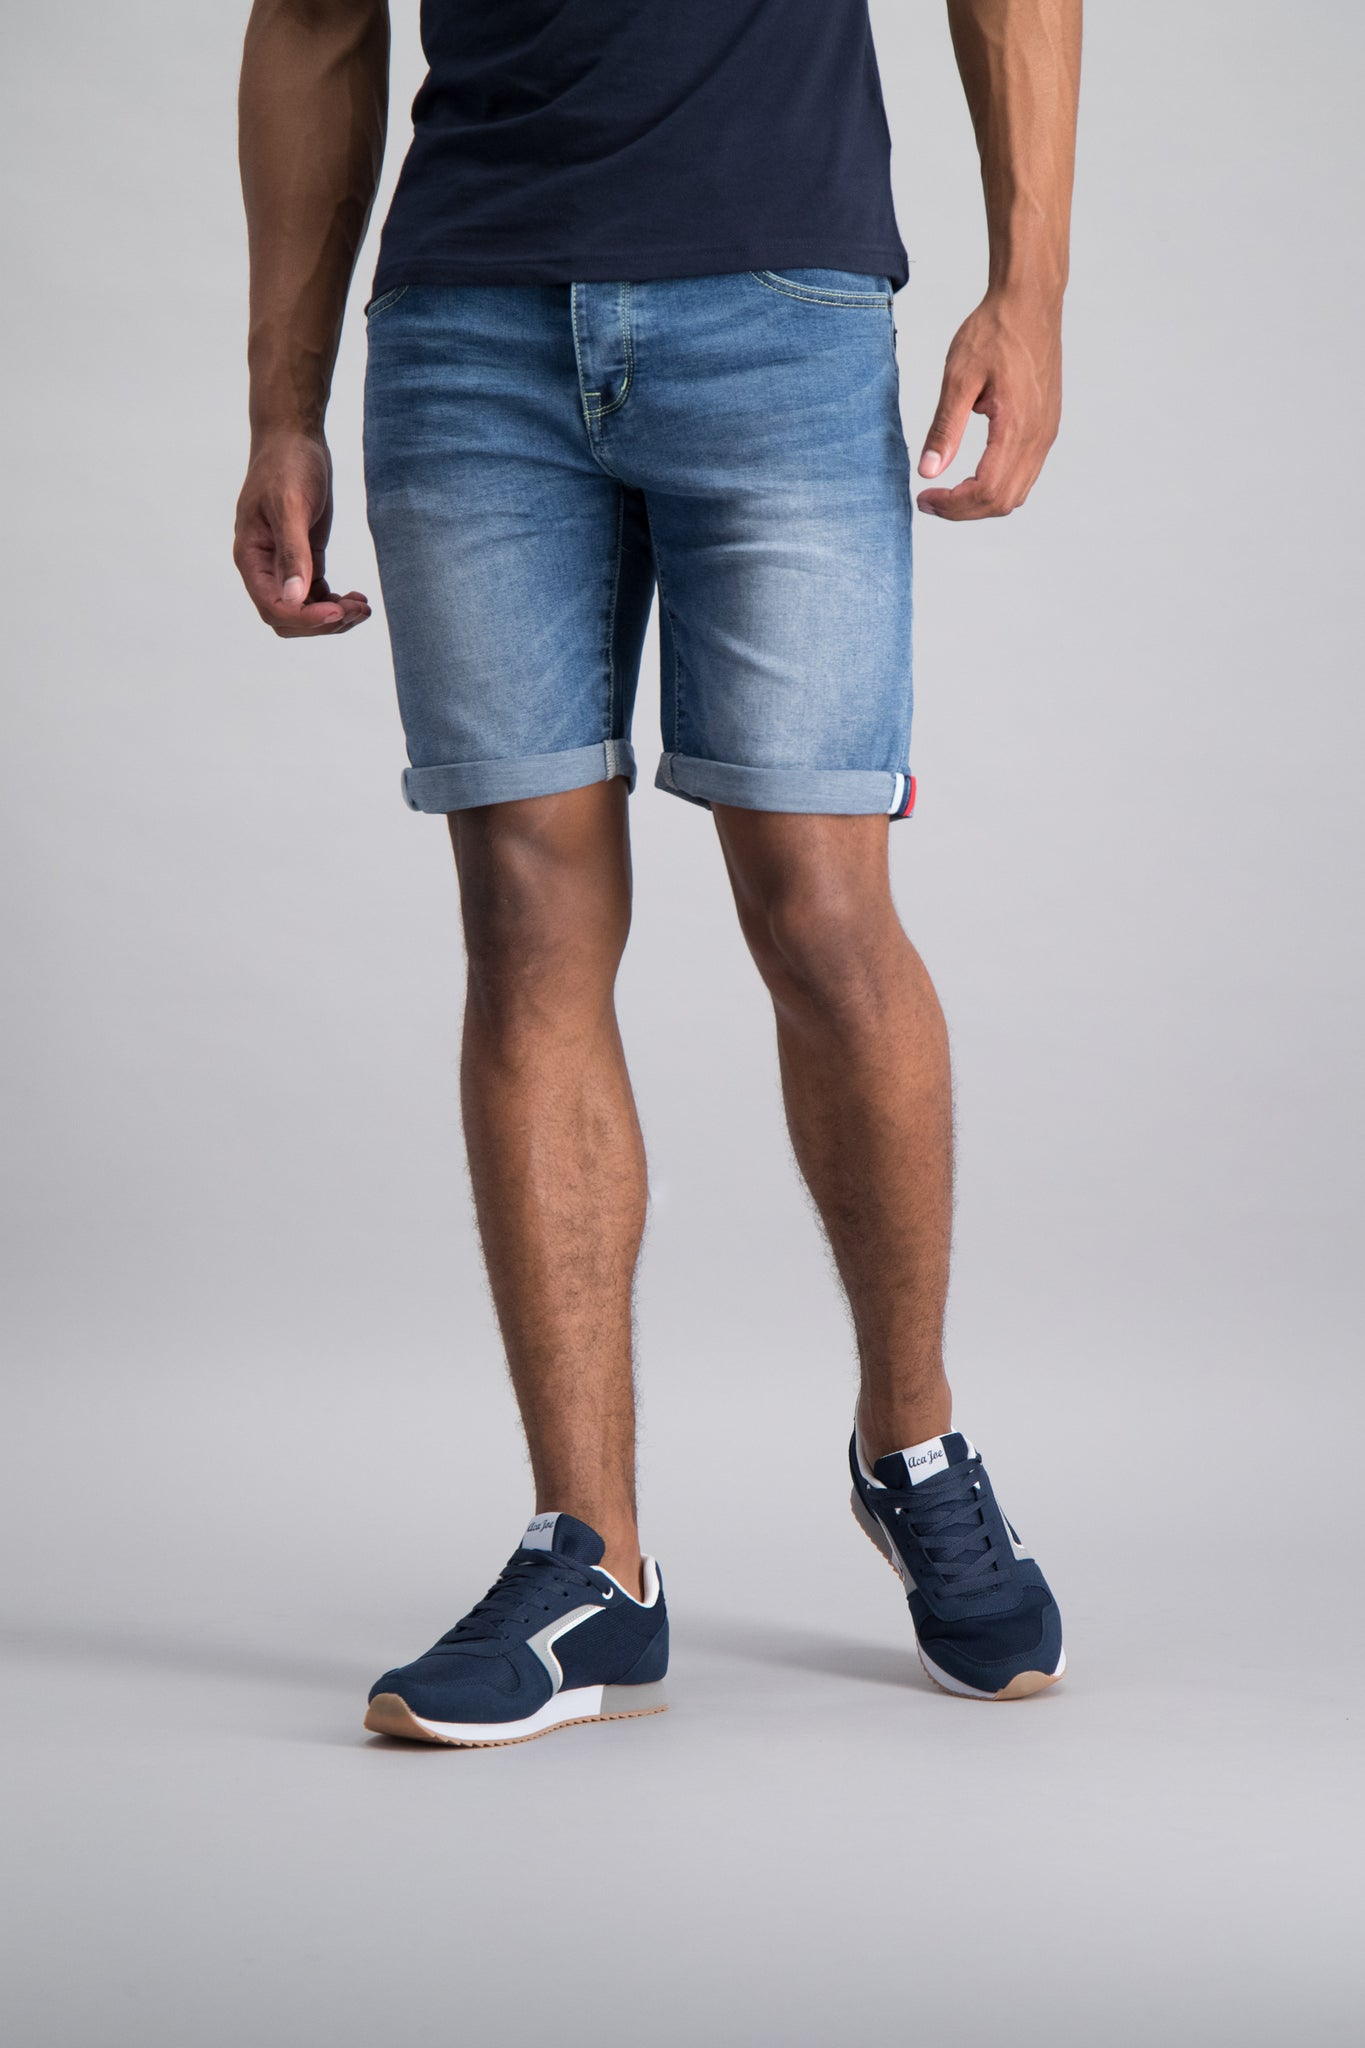 Styled Denim Shorts